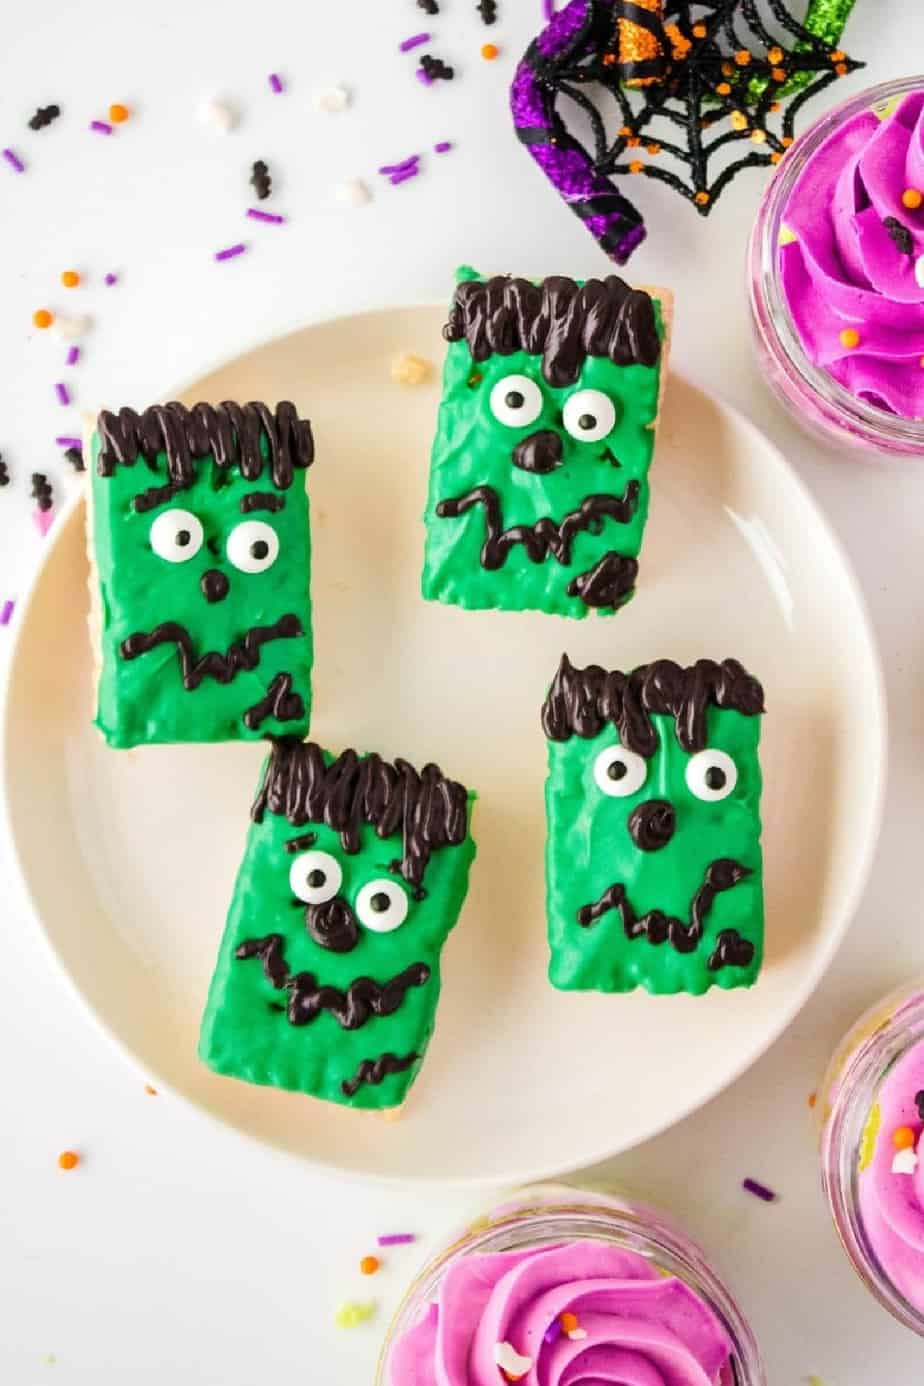 Rectangle rice krispie treats decorated like green Frankenstein monsters on a plate.